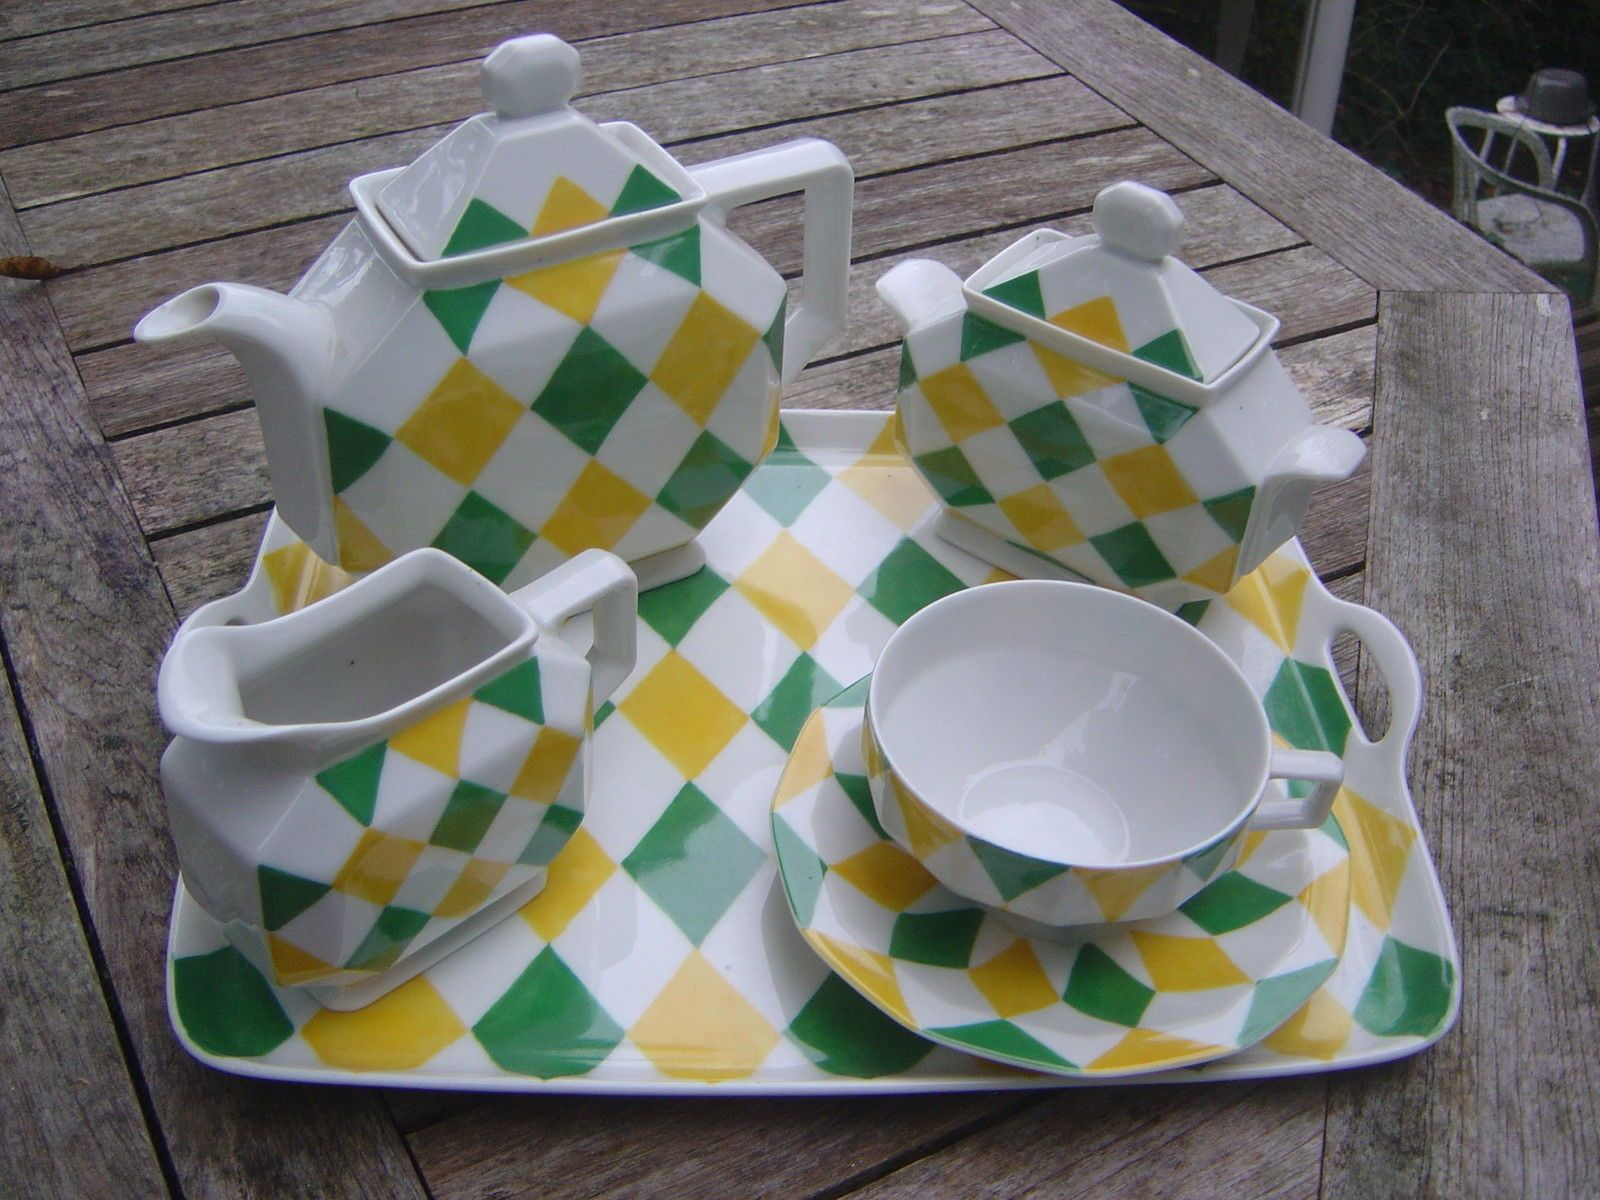 Art Deco Bernardaud Limoges Porcelain Tea Set In The